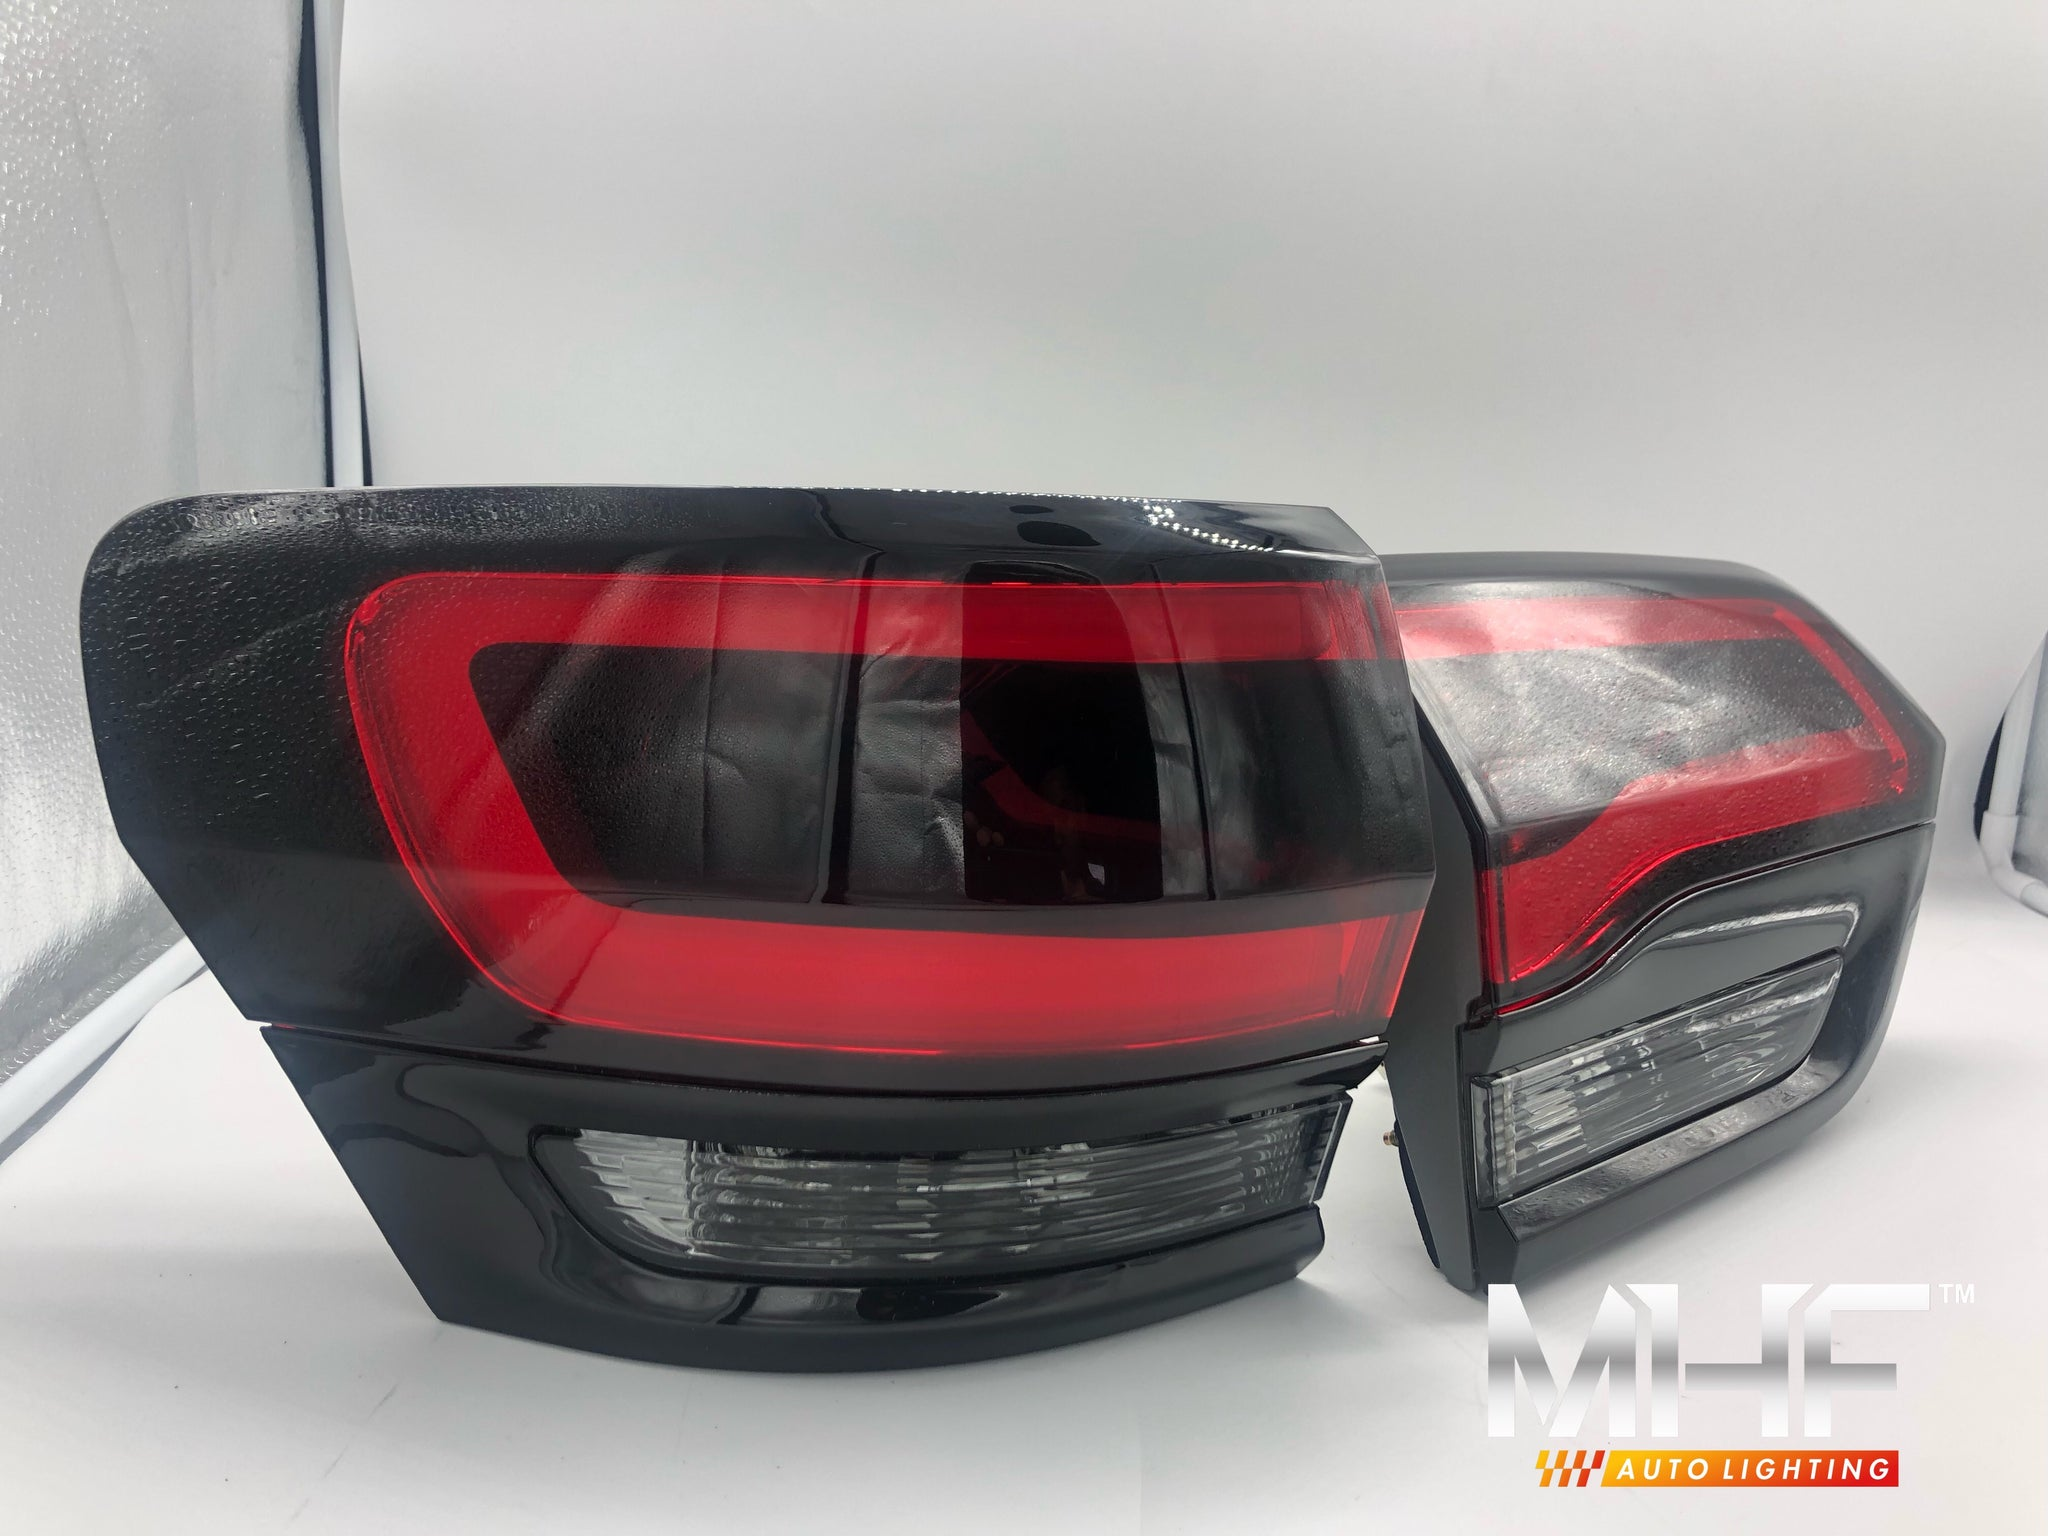 Painted Gloss Black Design LED Taillights 2014-2021 Jeep WK2